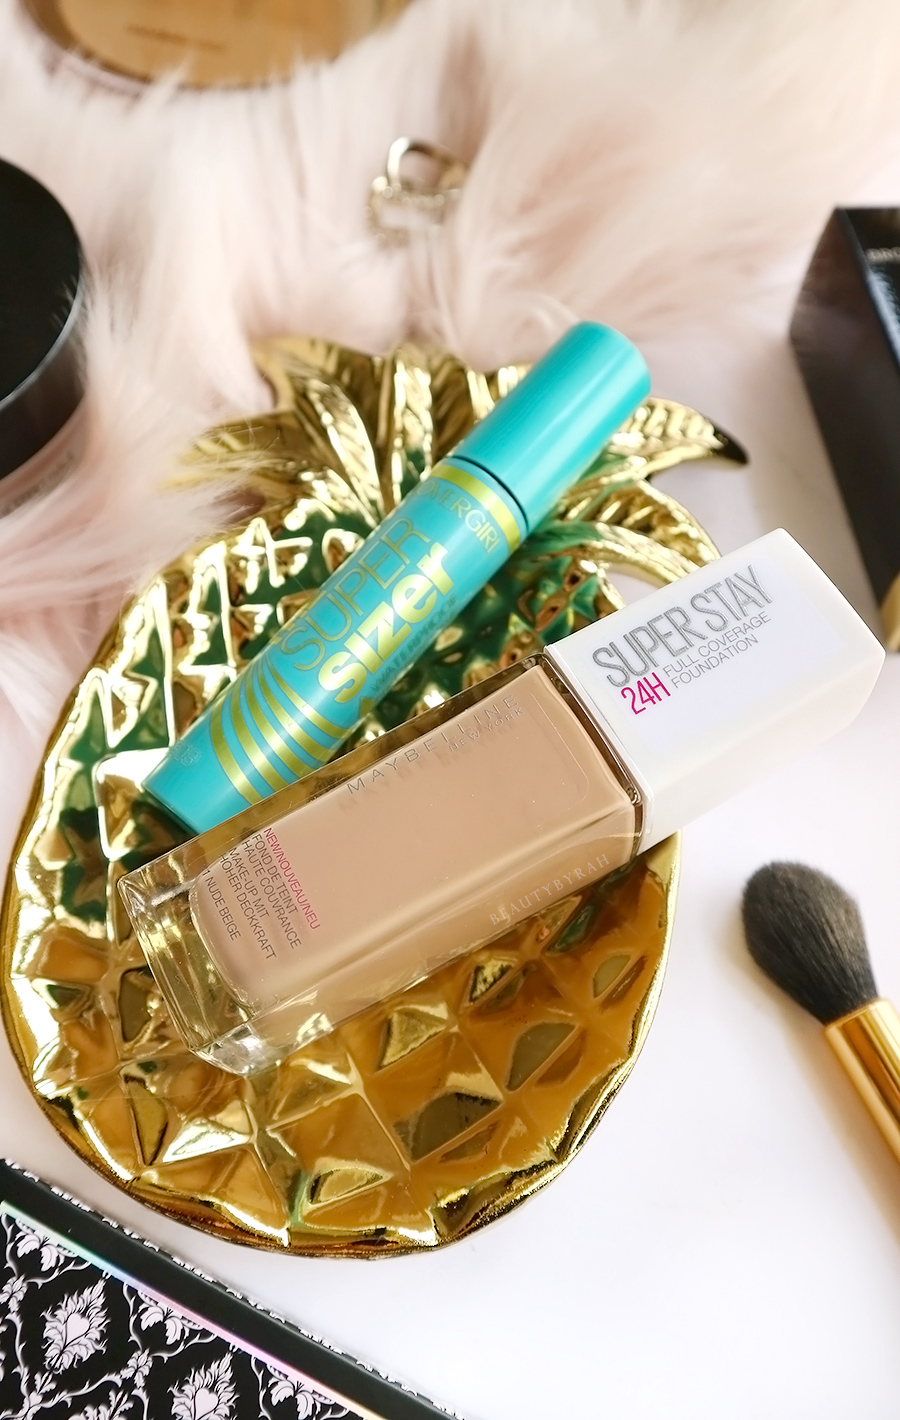 Maybelline Super Stay Foundation and Covergirl Super Sizer Mascara Review